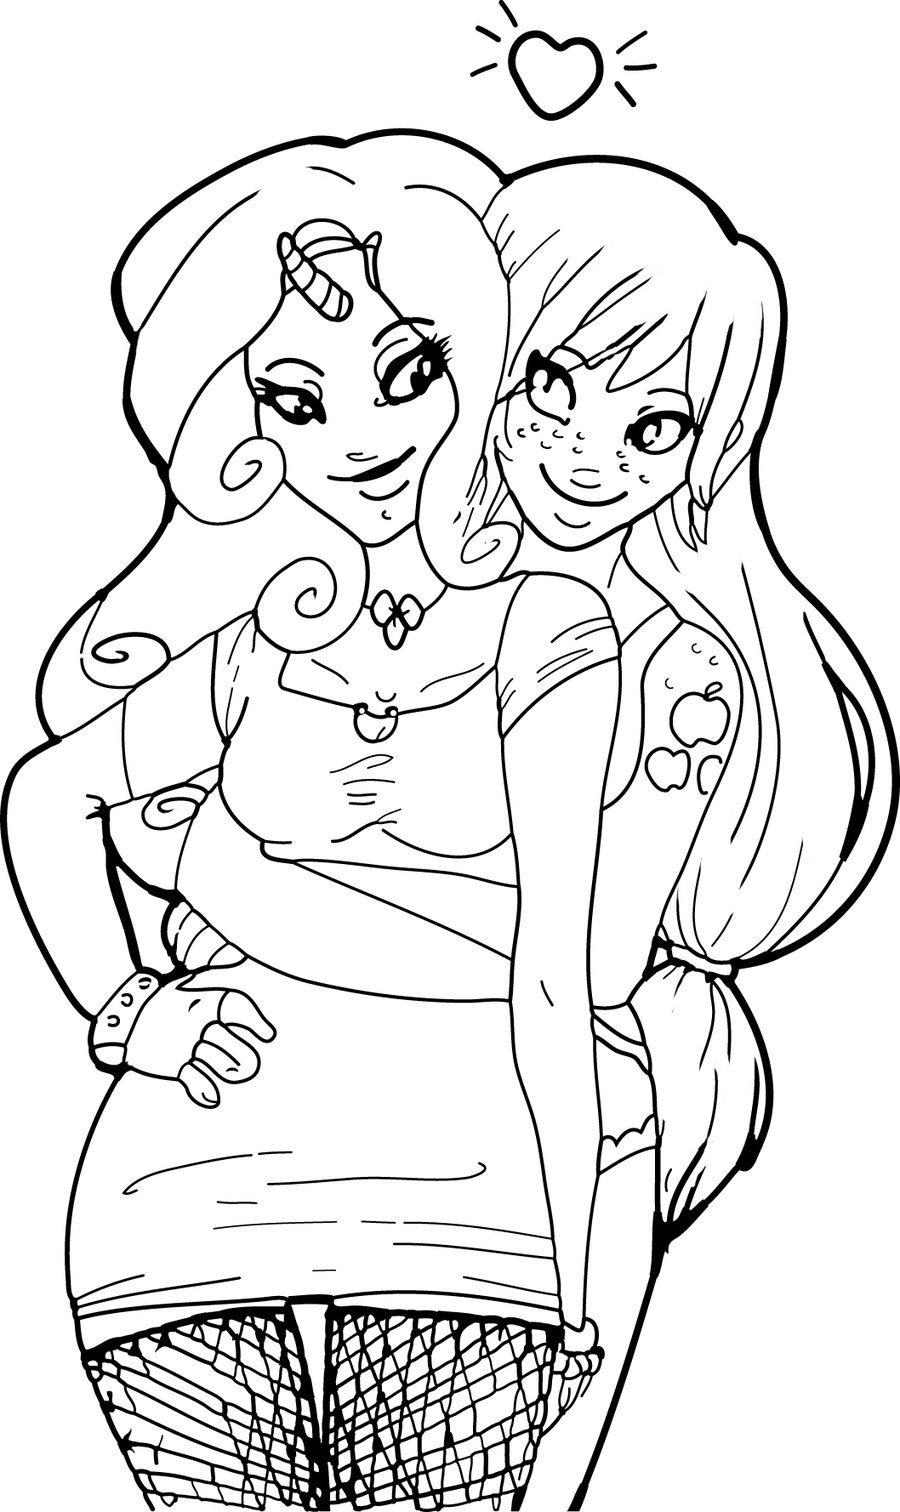 Best ideas about Best Friend Coloring Pages For Girls . Save or Pin Cute Best Friend Drawings Color to Pin on Now.